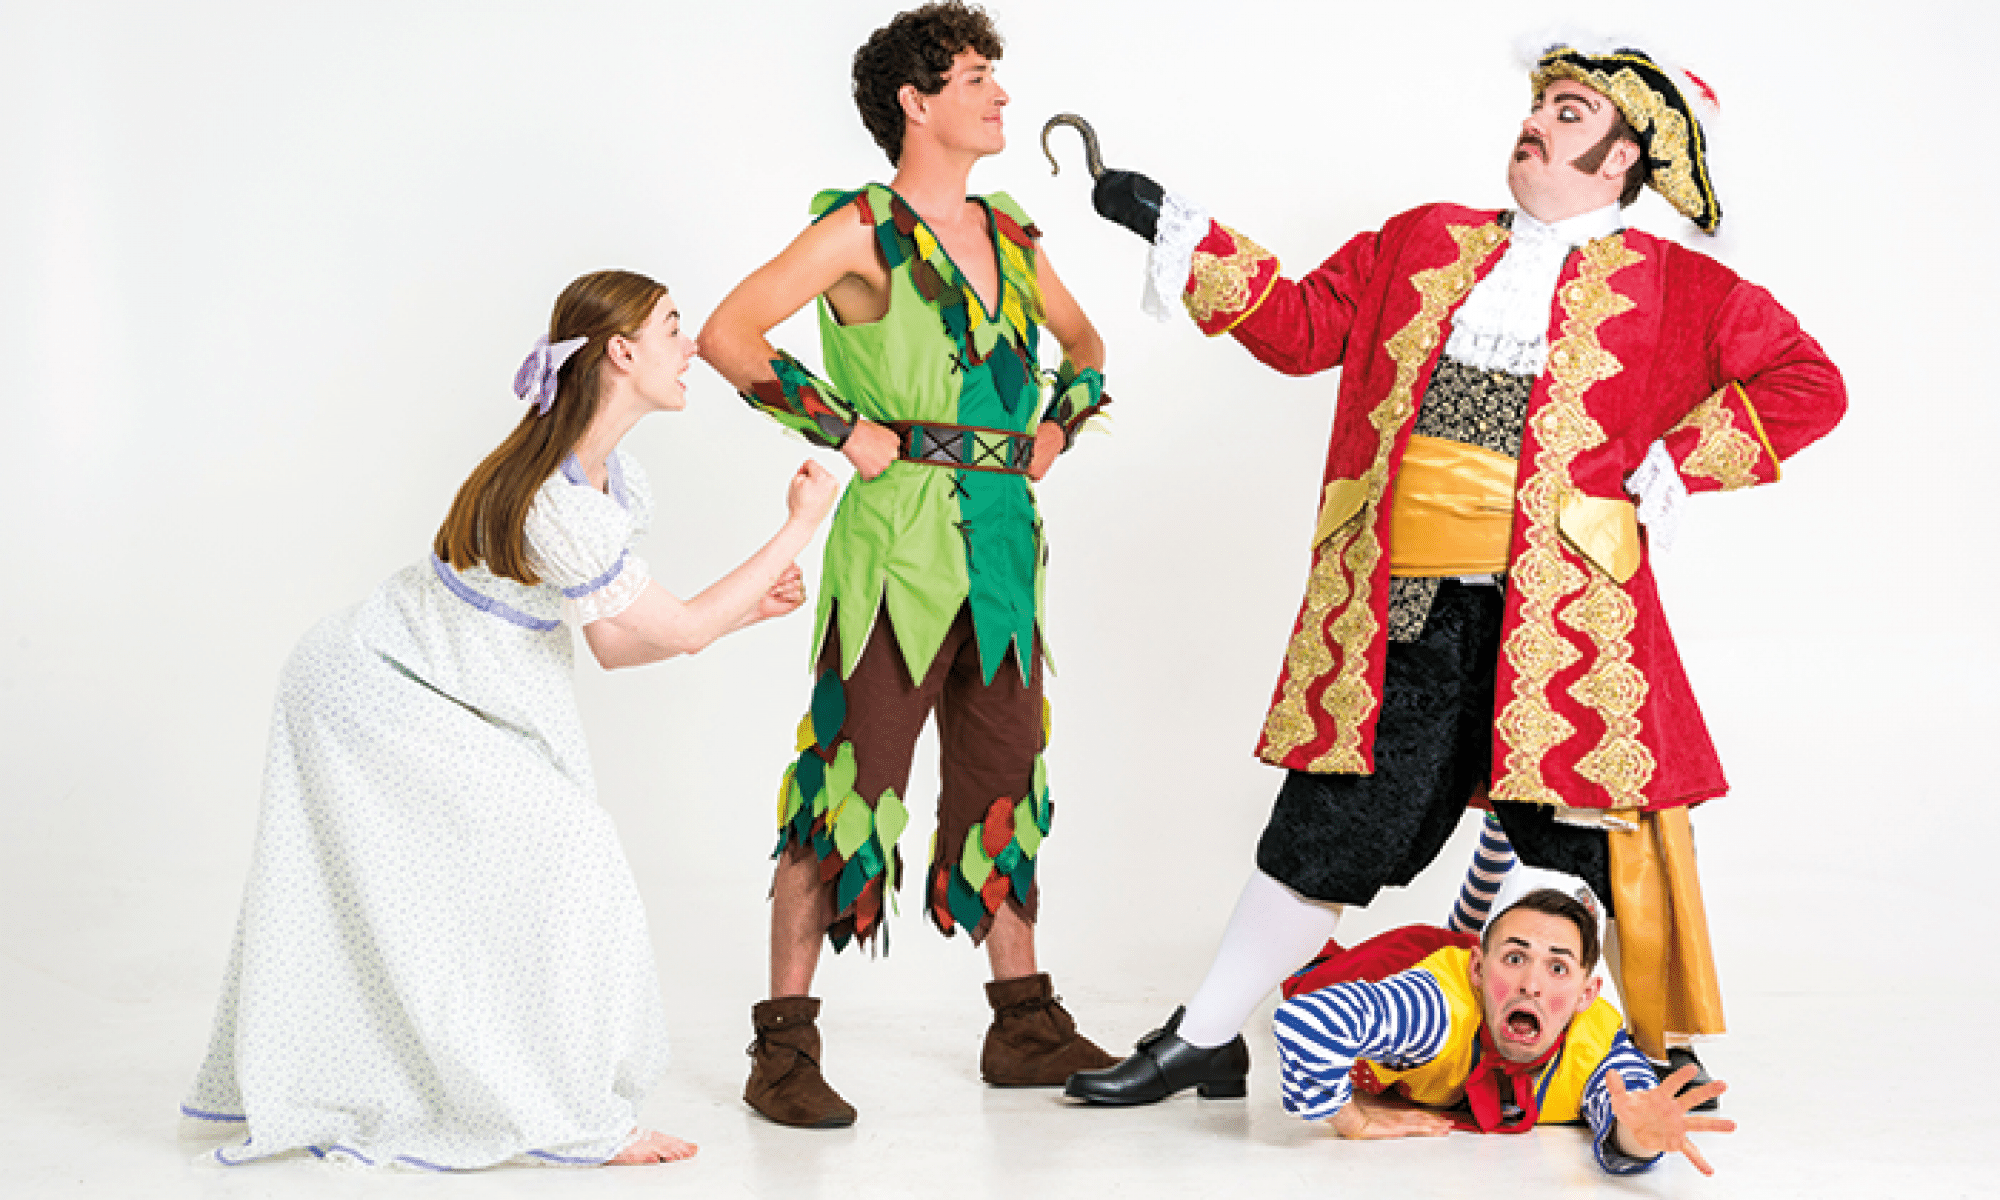 Immersion Theatre's Peter Pan